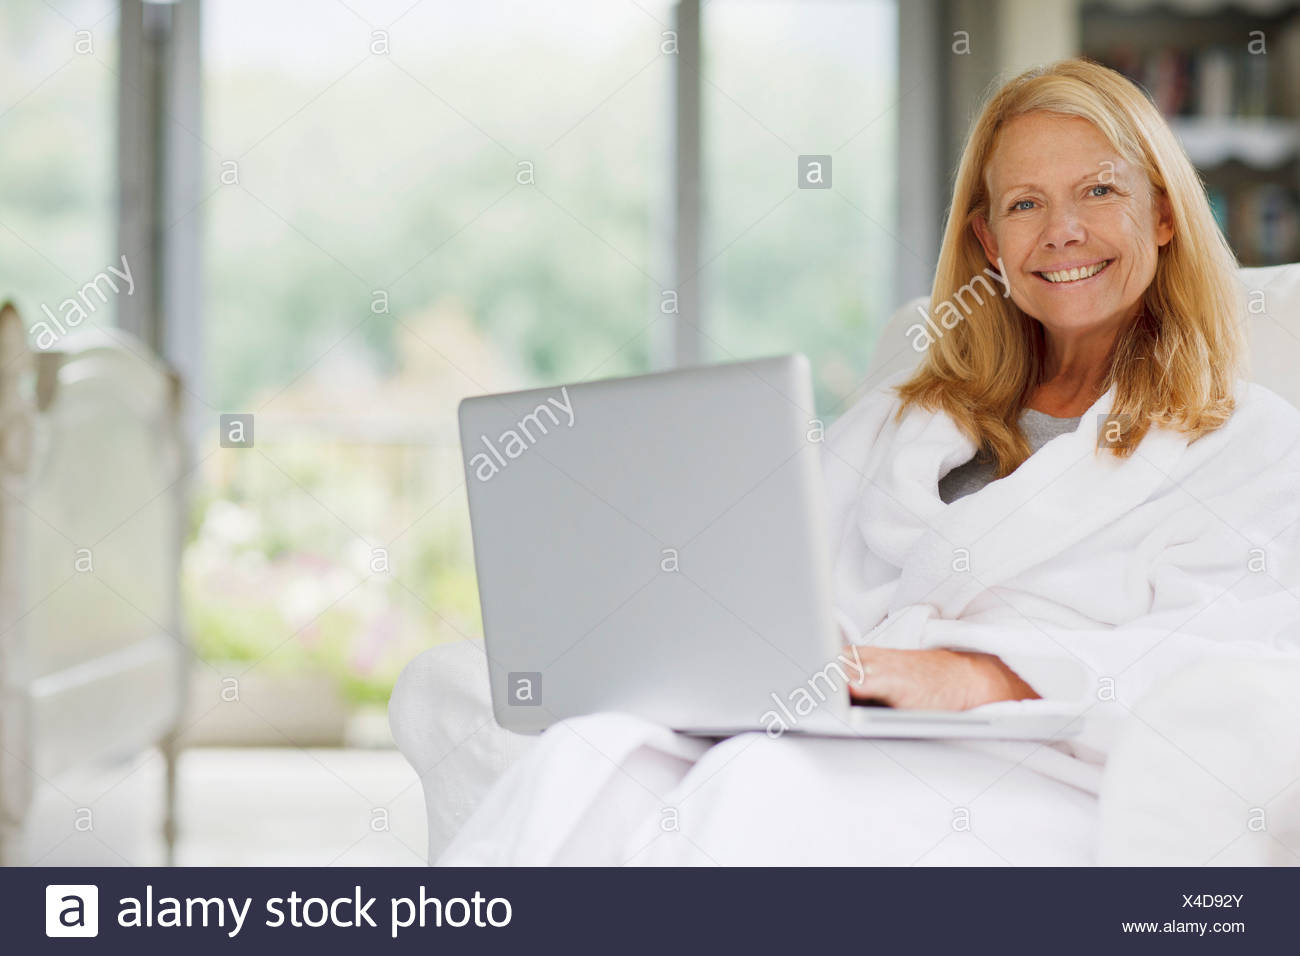 Bedroom Robe Stock Photos   Bedroom Robe Stock Images - Alamy 16d0cbc56